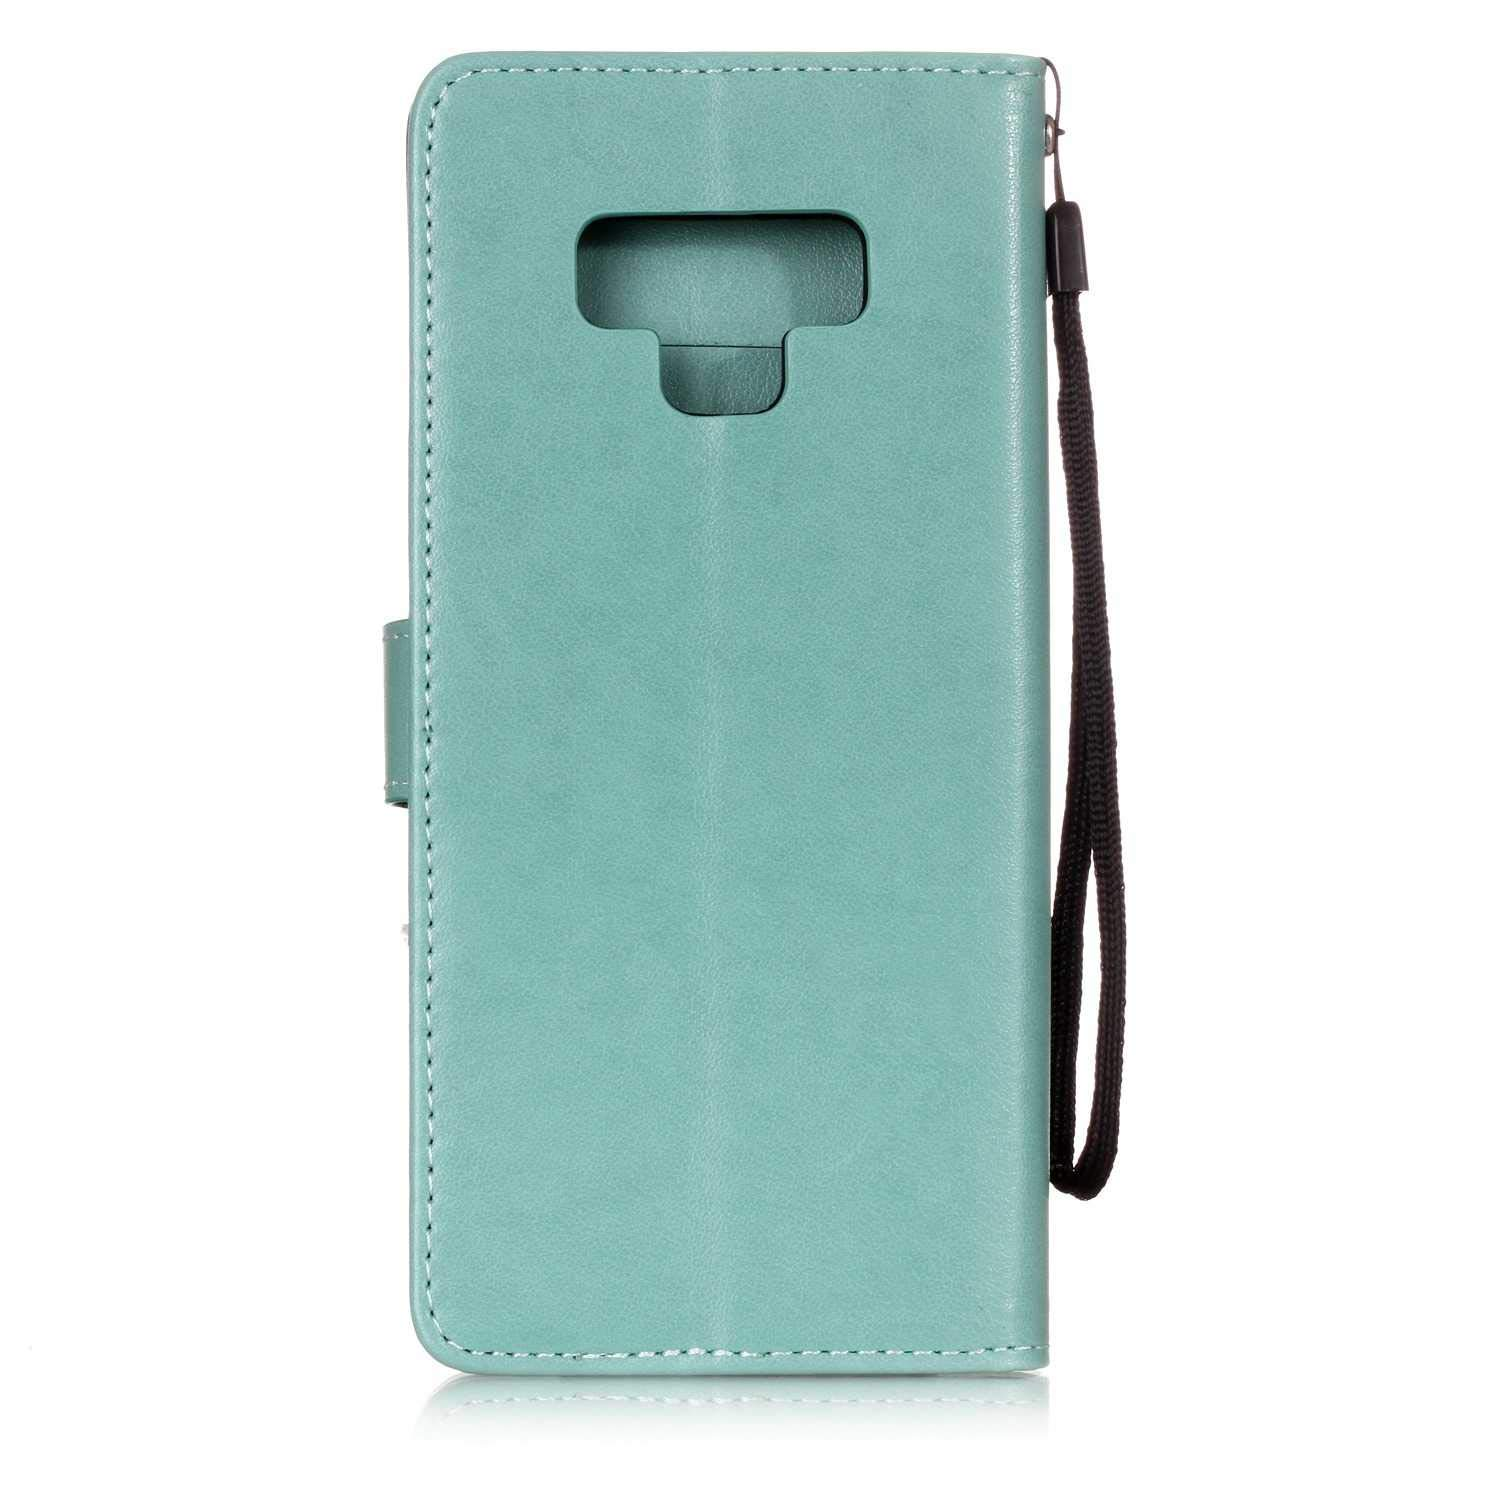 The Grafu Galaxy Note 9 Case Black #1 Wallet Case Leather Embossed Magnetic Cover Credit Card Case with Free Tempered Glass Screen Protector for Samsung Galaxy Note 9